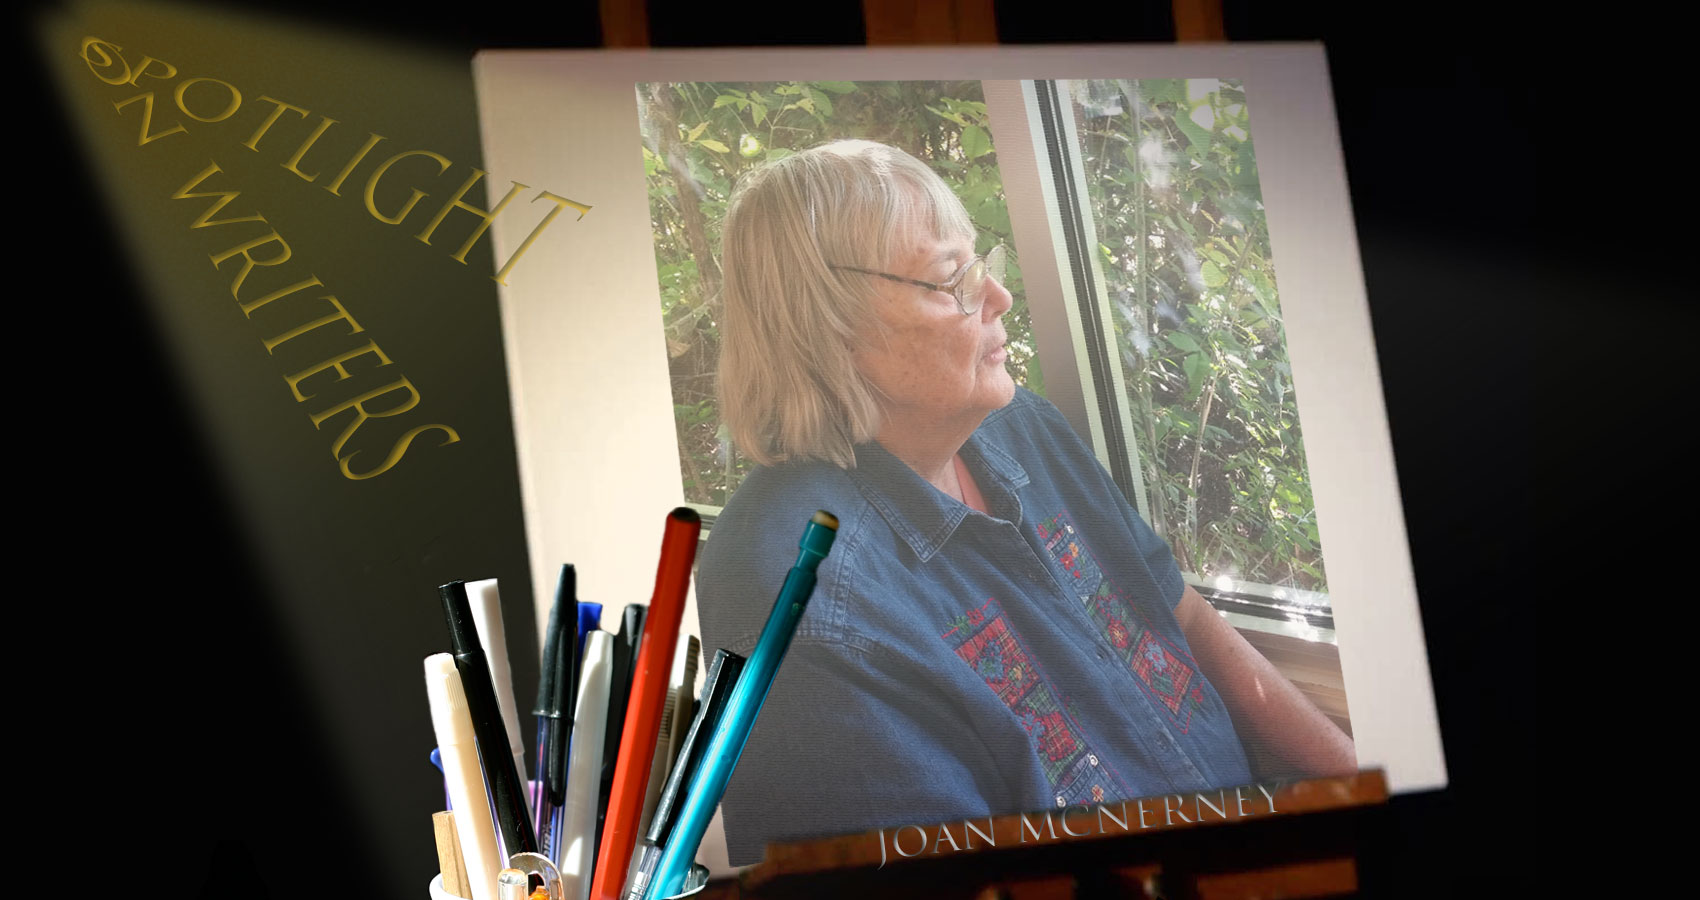 Spotlight On Writers - Joan McNerney, interview at Spillwords.com